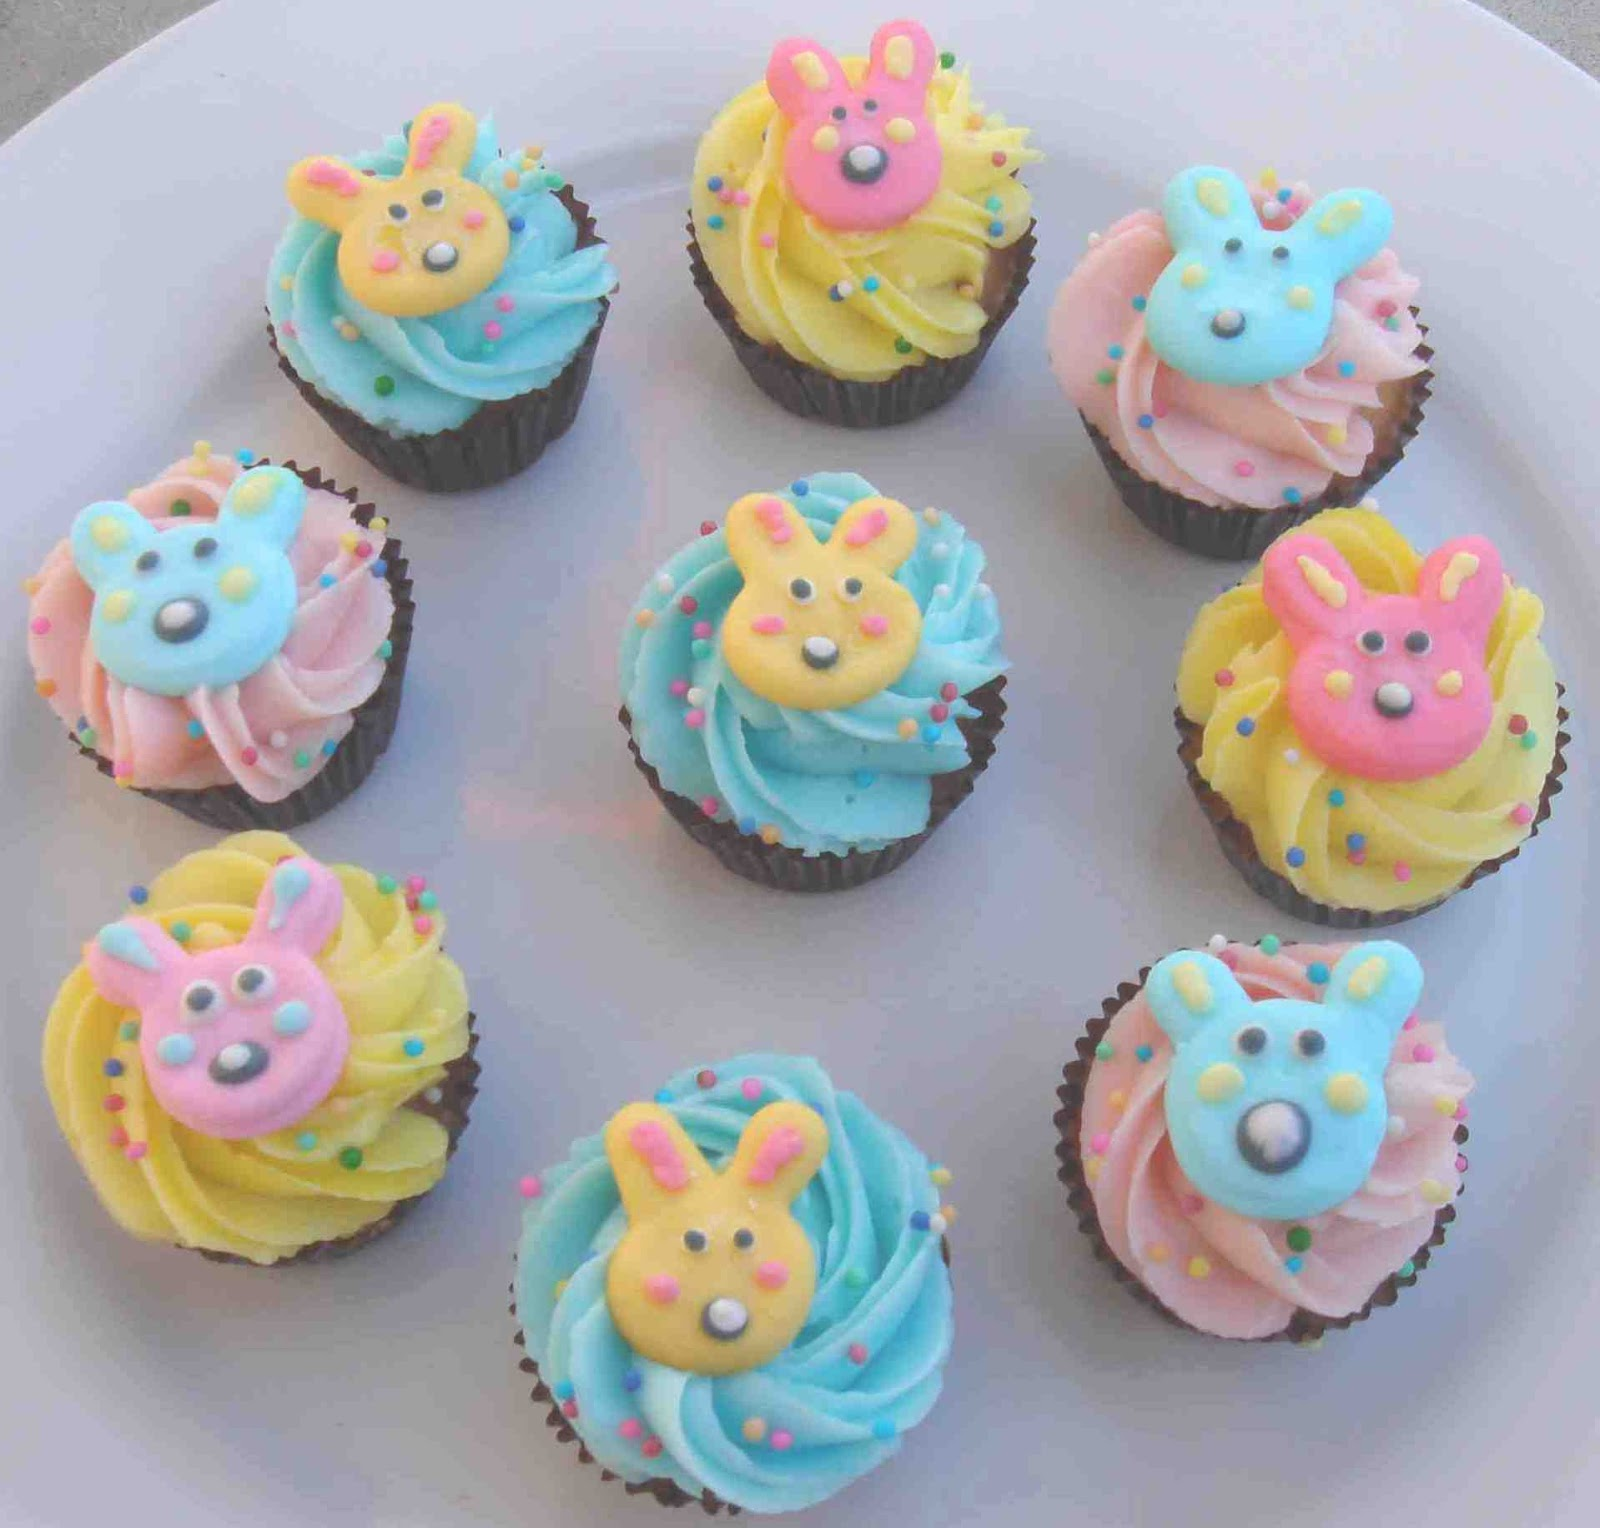 Cupcake Cake Ideas: Cupcake Decorating Ideas For Easter : Let's Celebrate